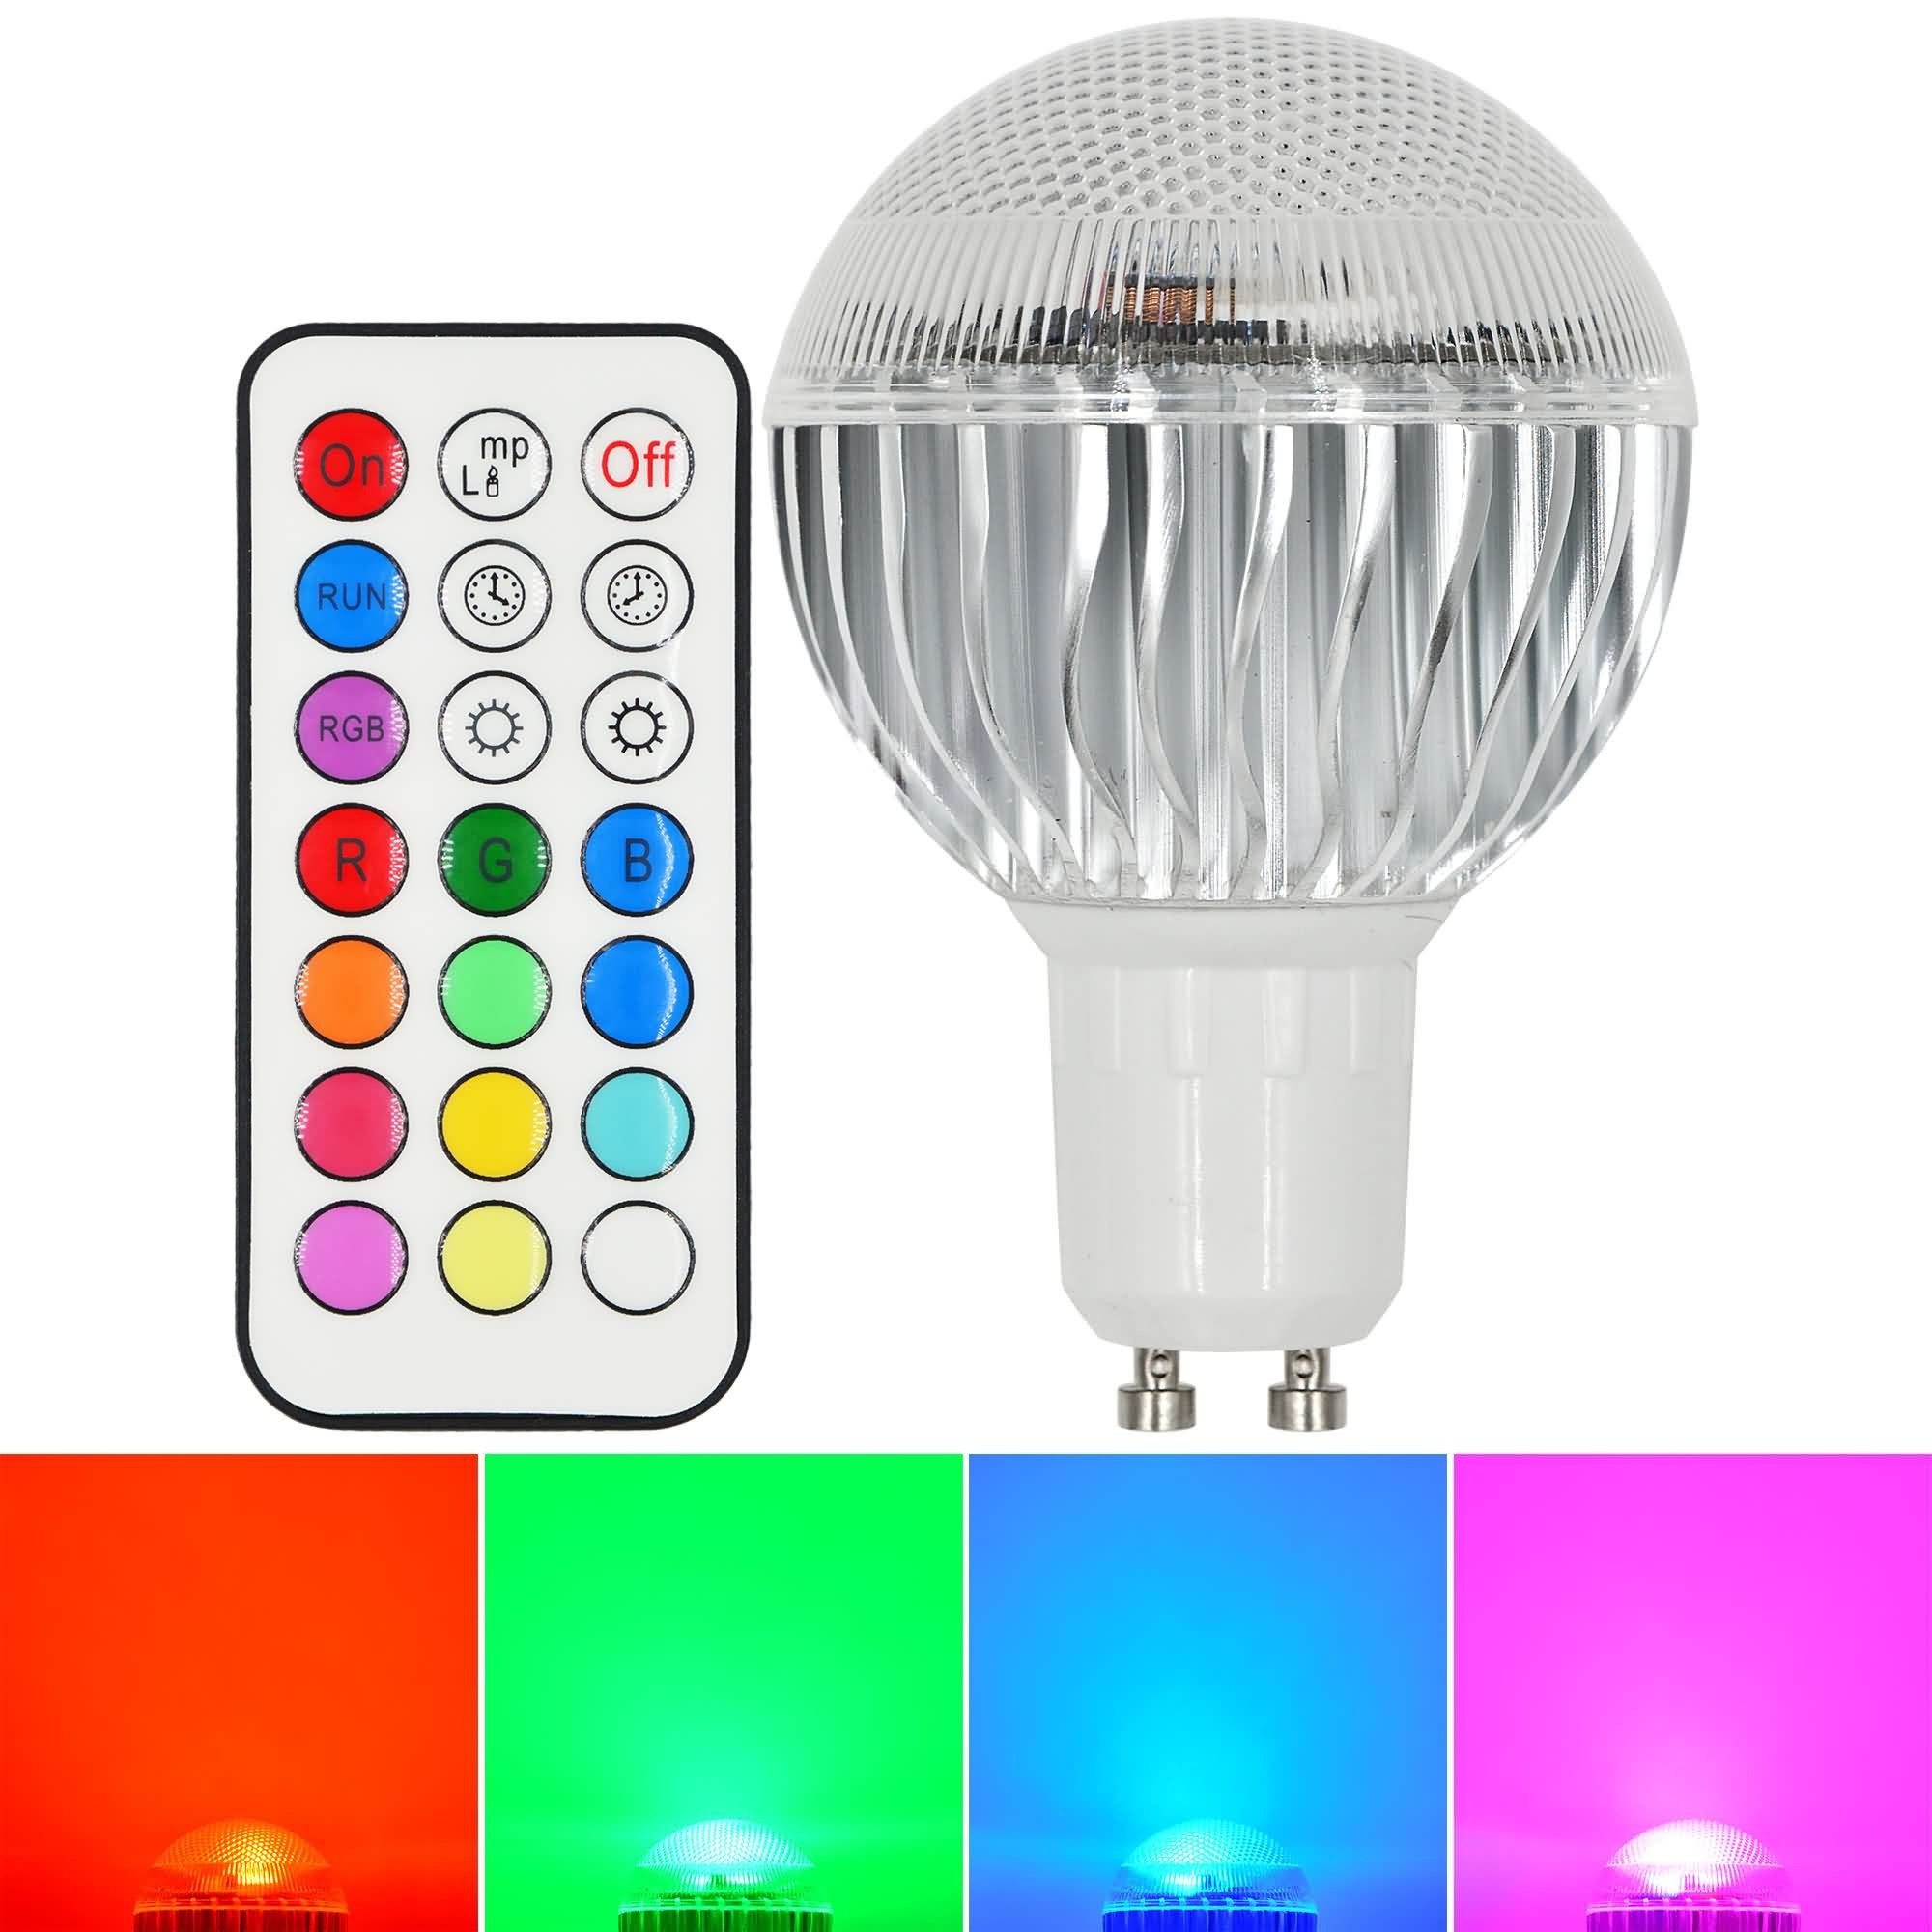 MENGS® GU10 8W LED RGB Light 16 Colour changing SMD LEDs LED Globe lamp Bulb with IR Remote Control - multicolor Dimmable